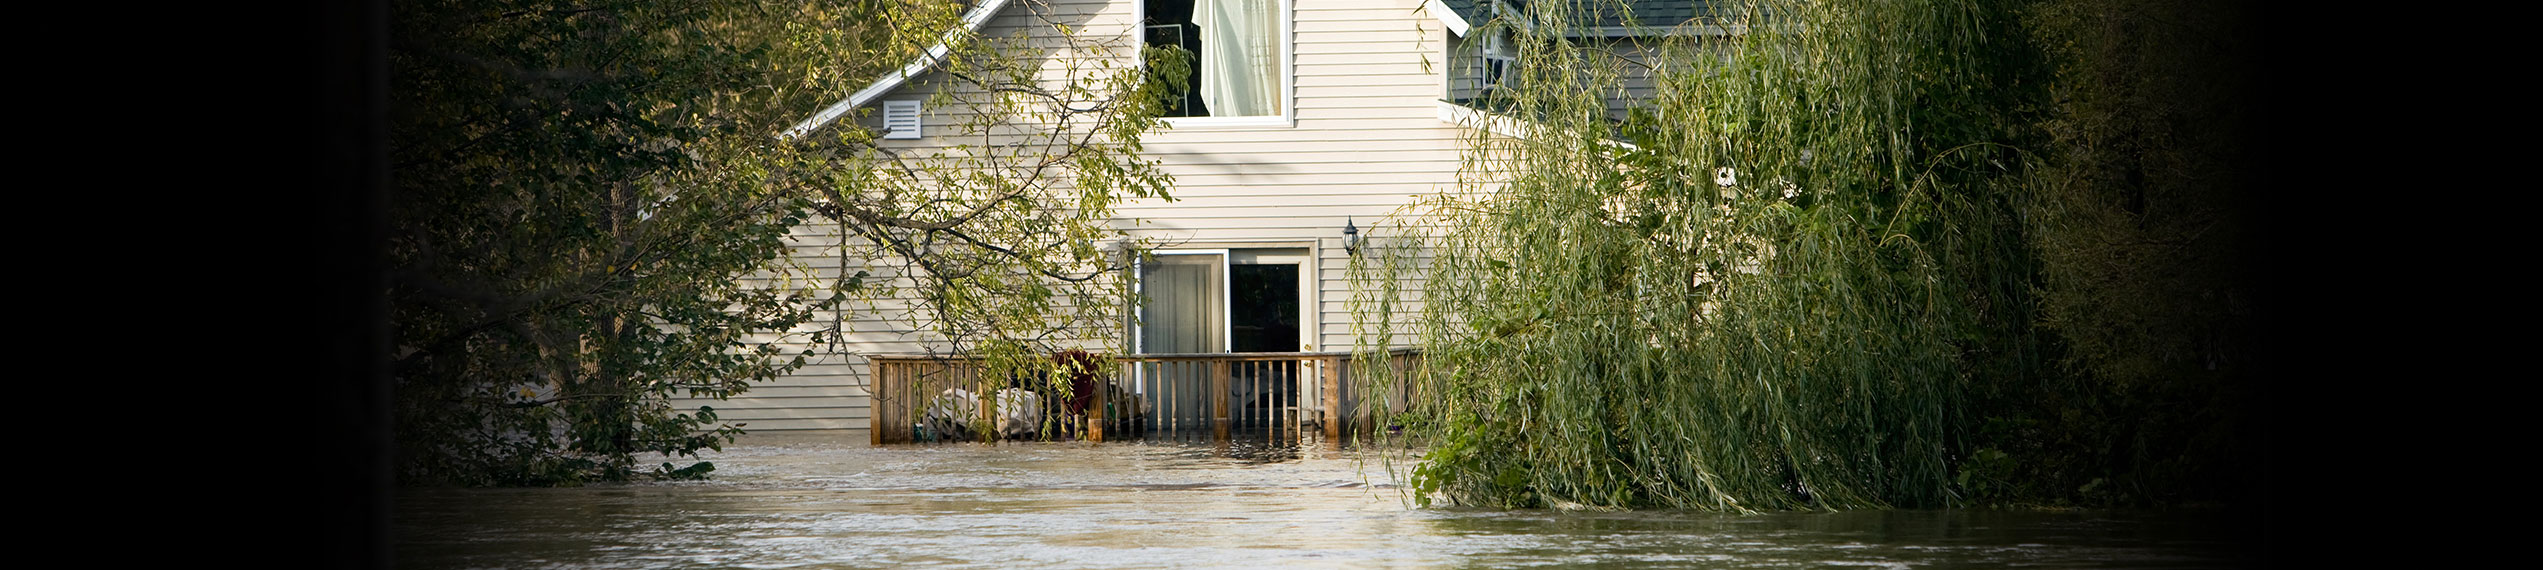 Water & Flood Damage Removal Services in Paul Davis Emergency Services of East Onondaga County NY